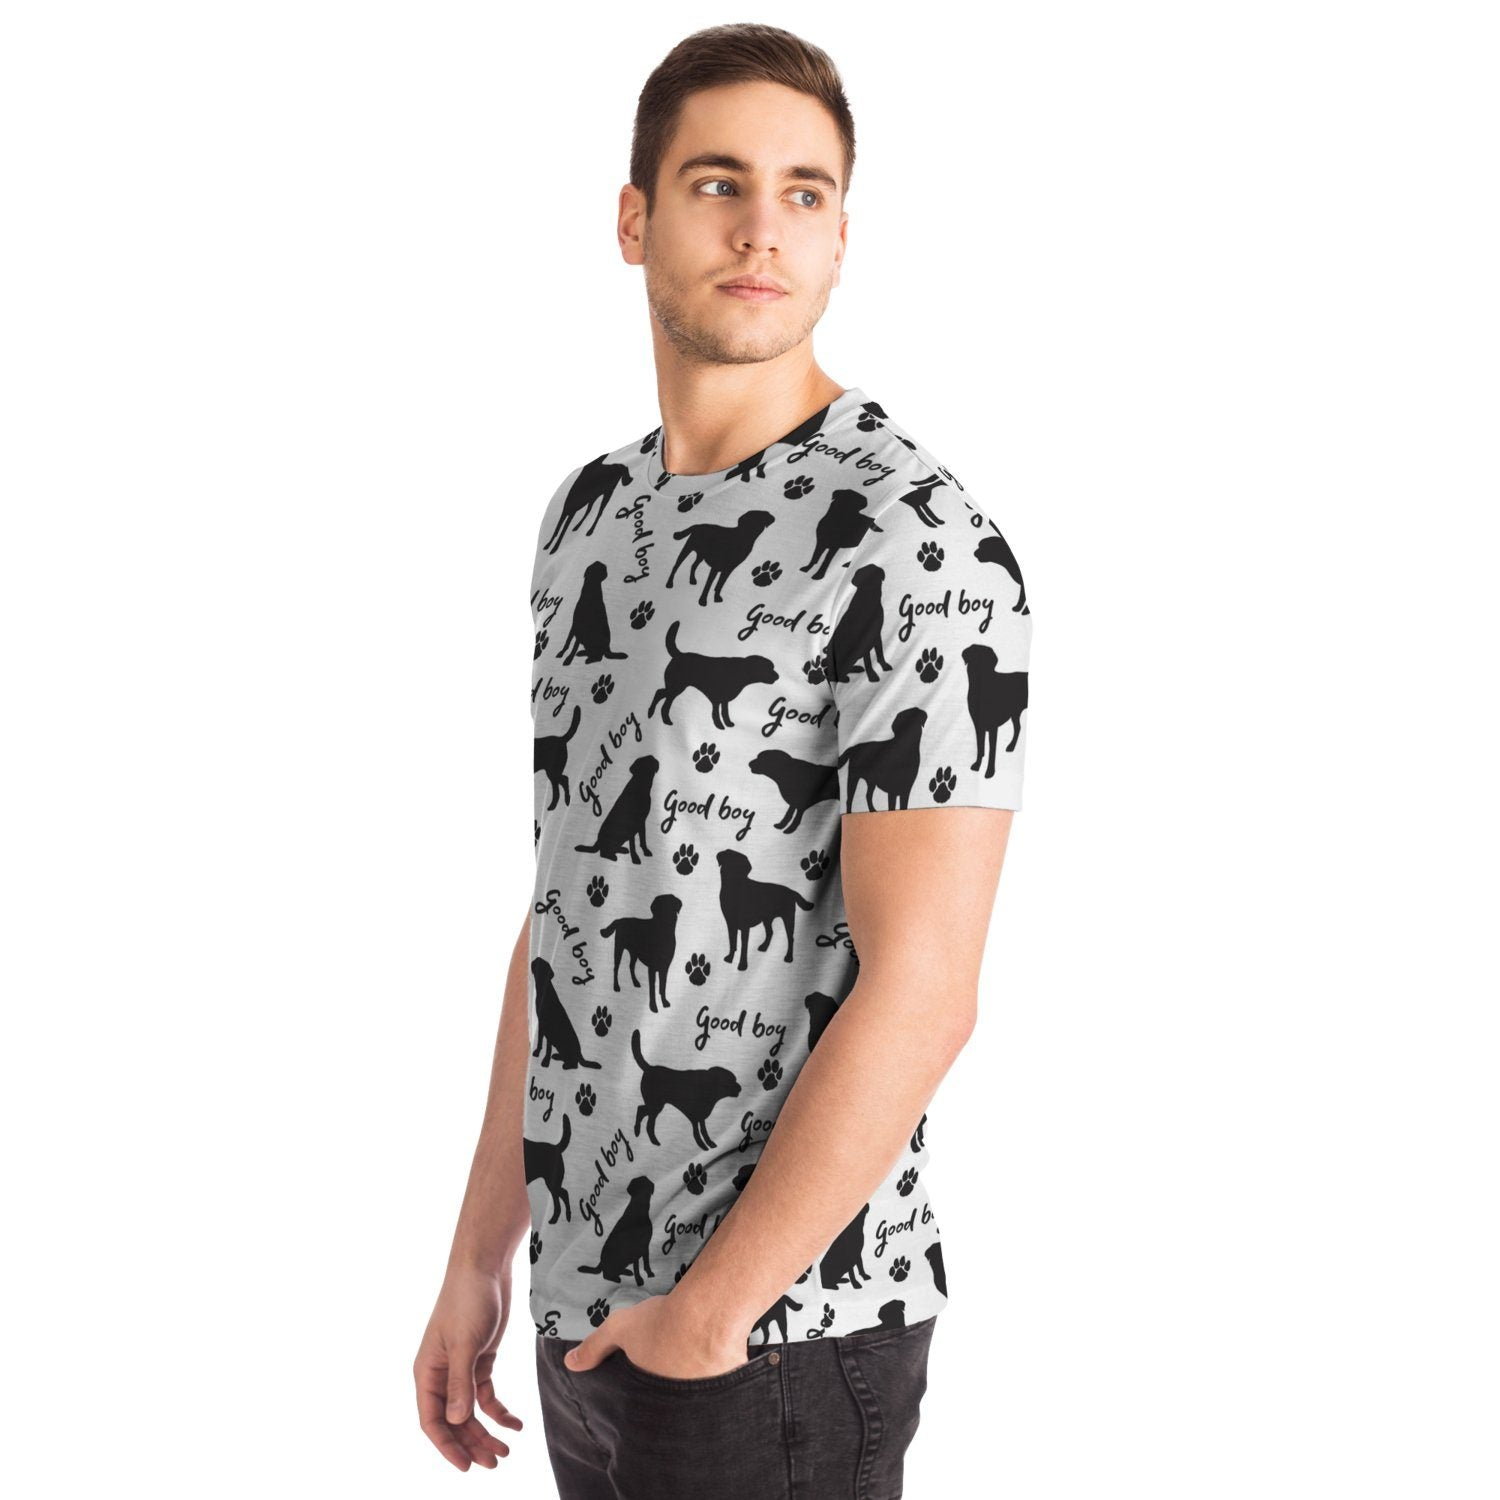 Good boy T-shirt - Fair Dinkum Fashion